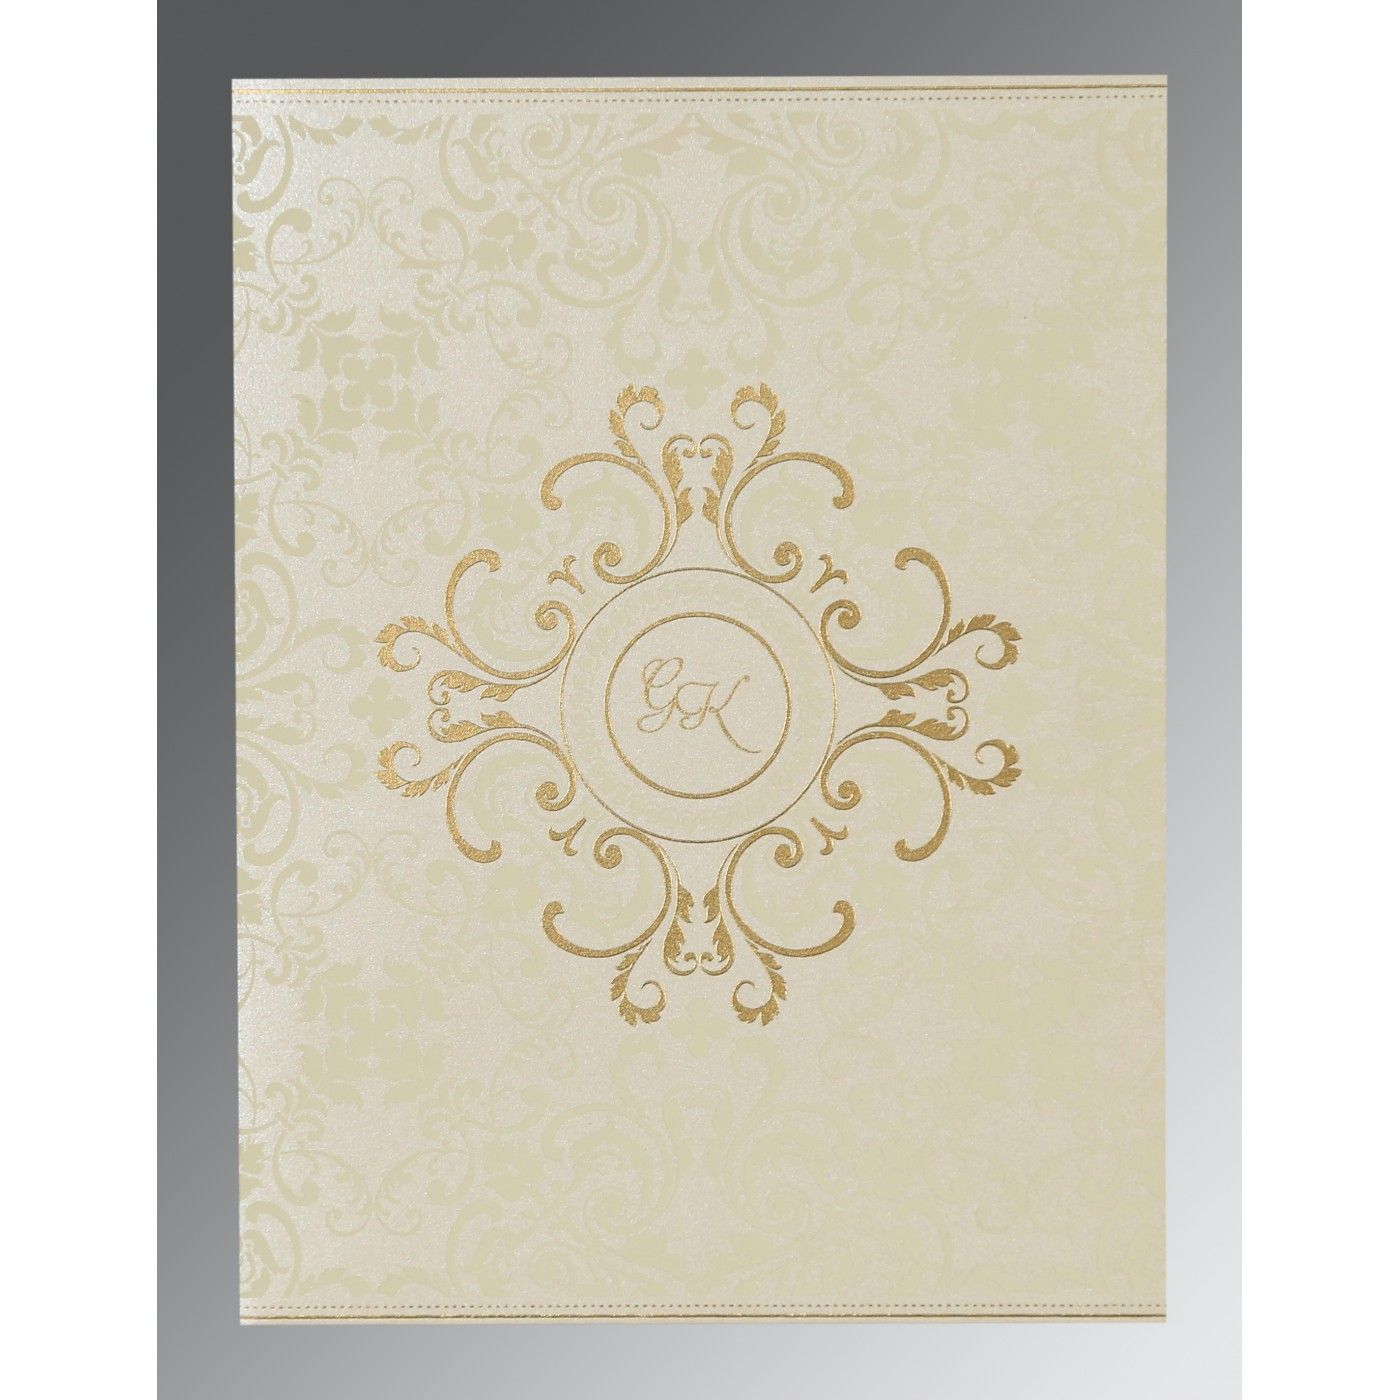 OFF-WHITE SHIMMERY SCREEN PRINTED WEDDING CARD : CG-8244B - IndianWeddingCards